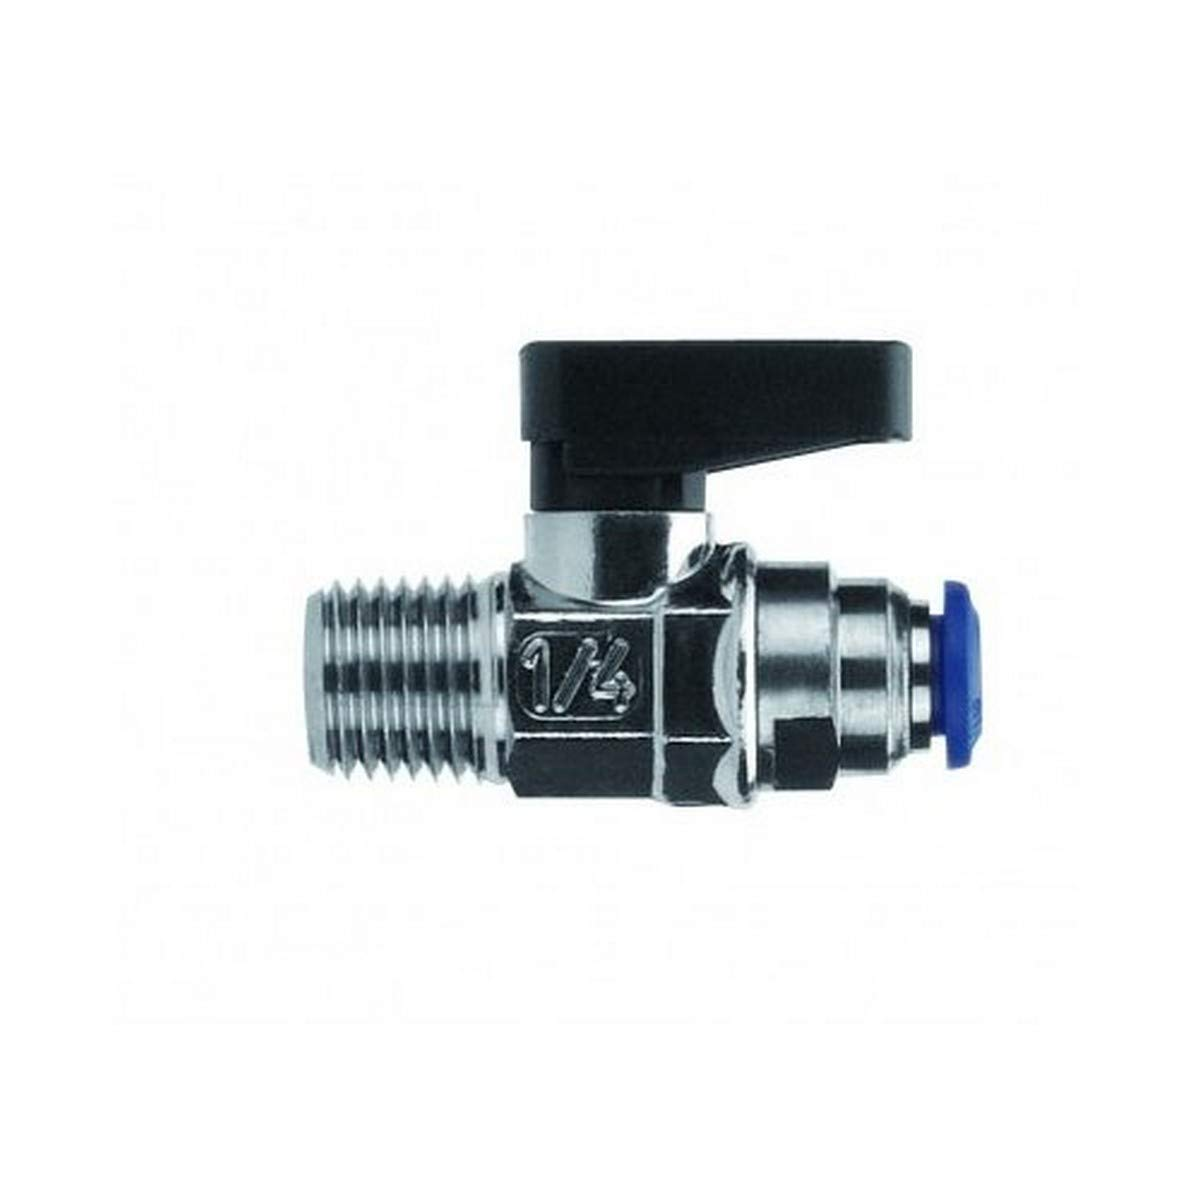 AIGNEP USA 6570N-6-1 Popular brand in the world 8 Mini Ball Push-to-Connect 6 Spring new work one after another Tub Valve mm